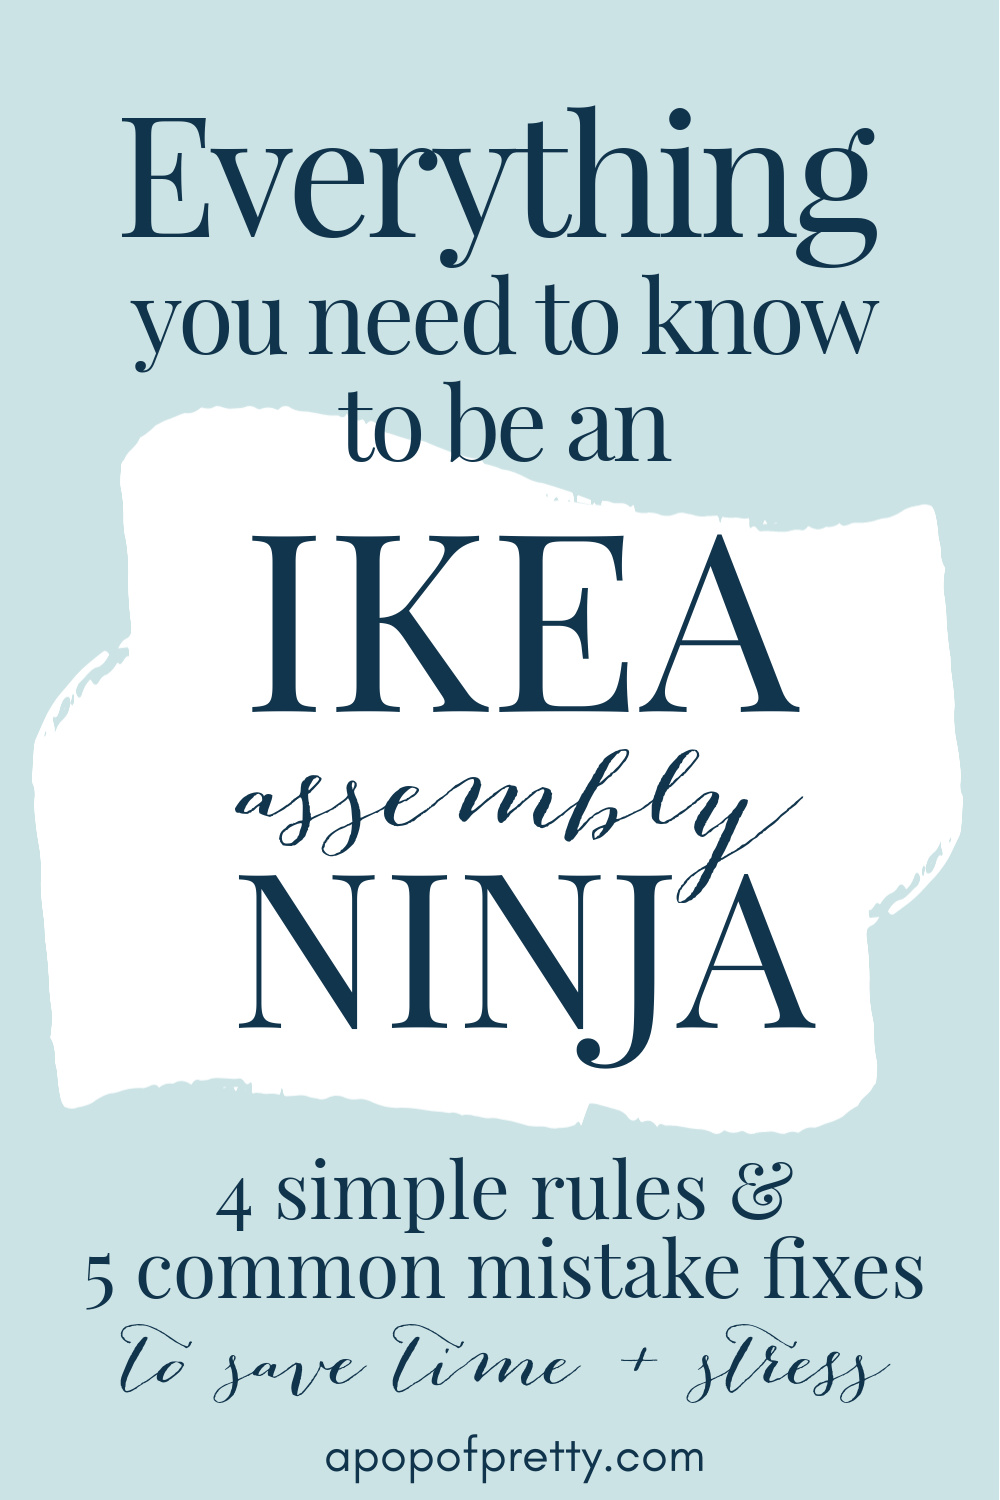 How to put together IKEA furniture